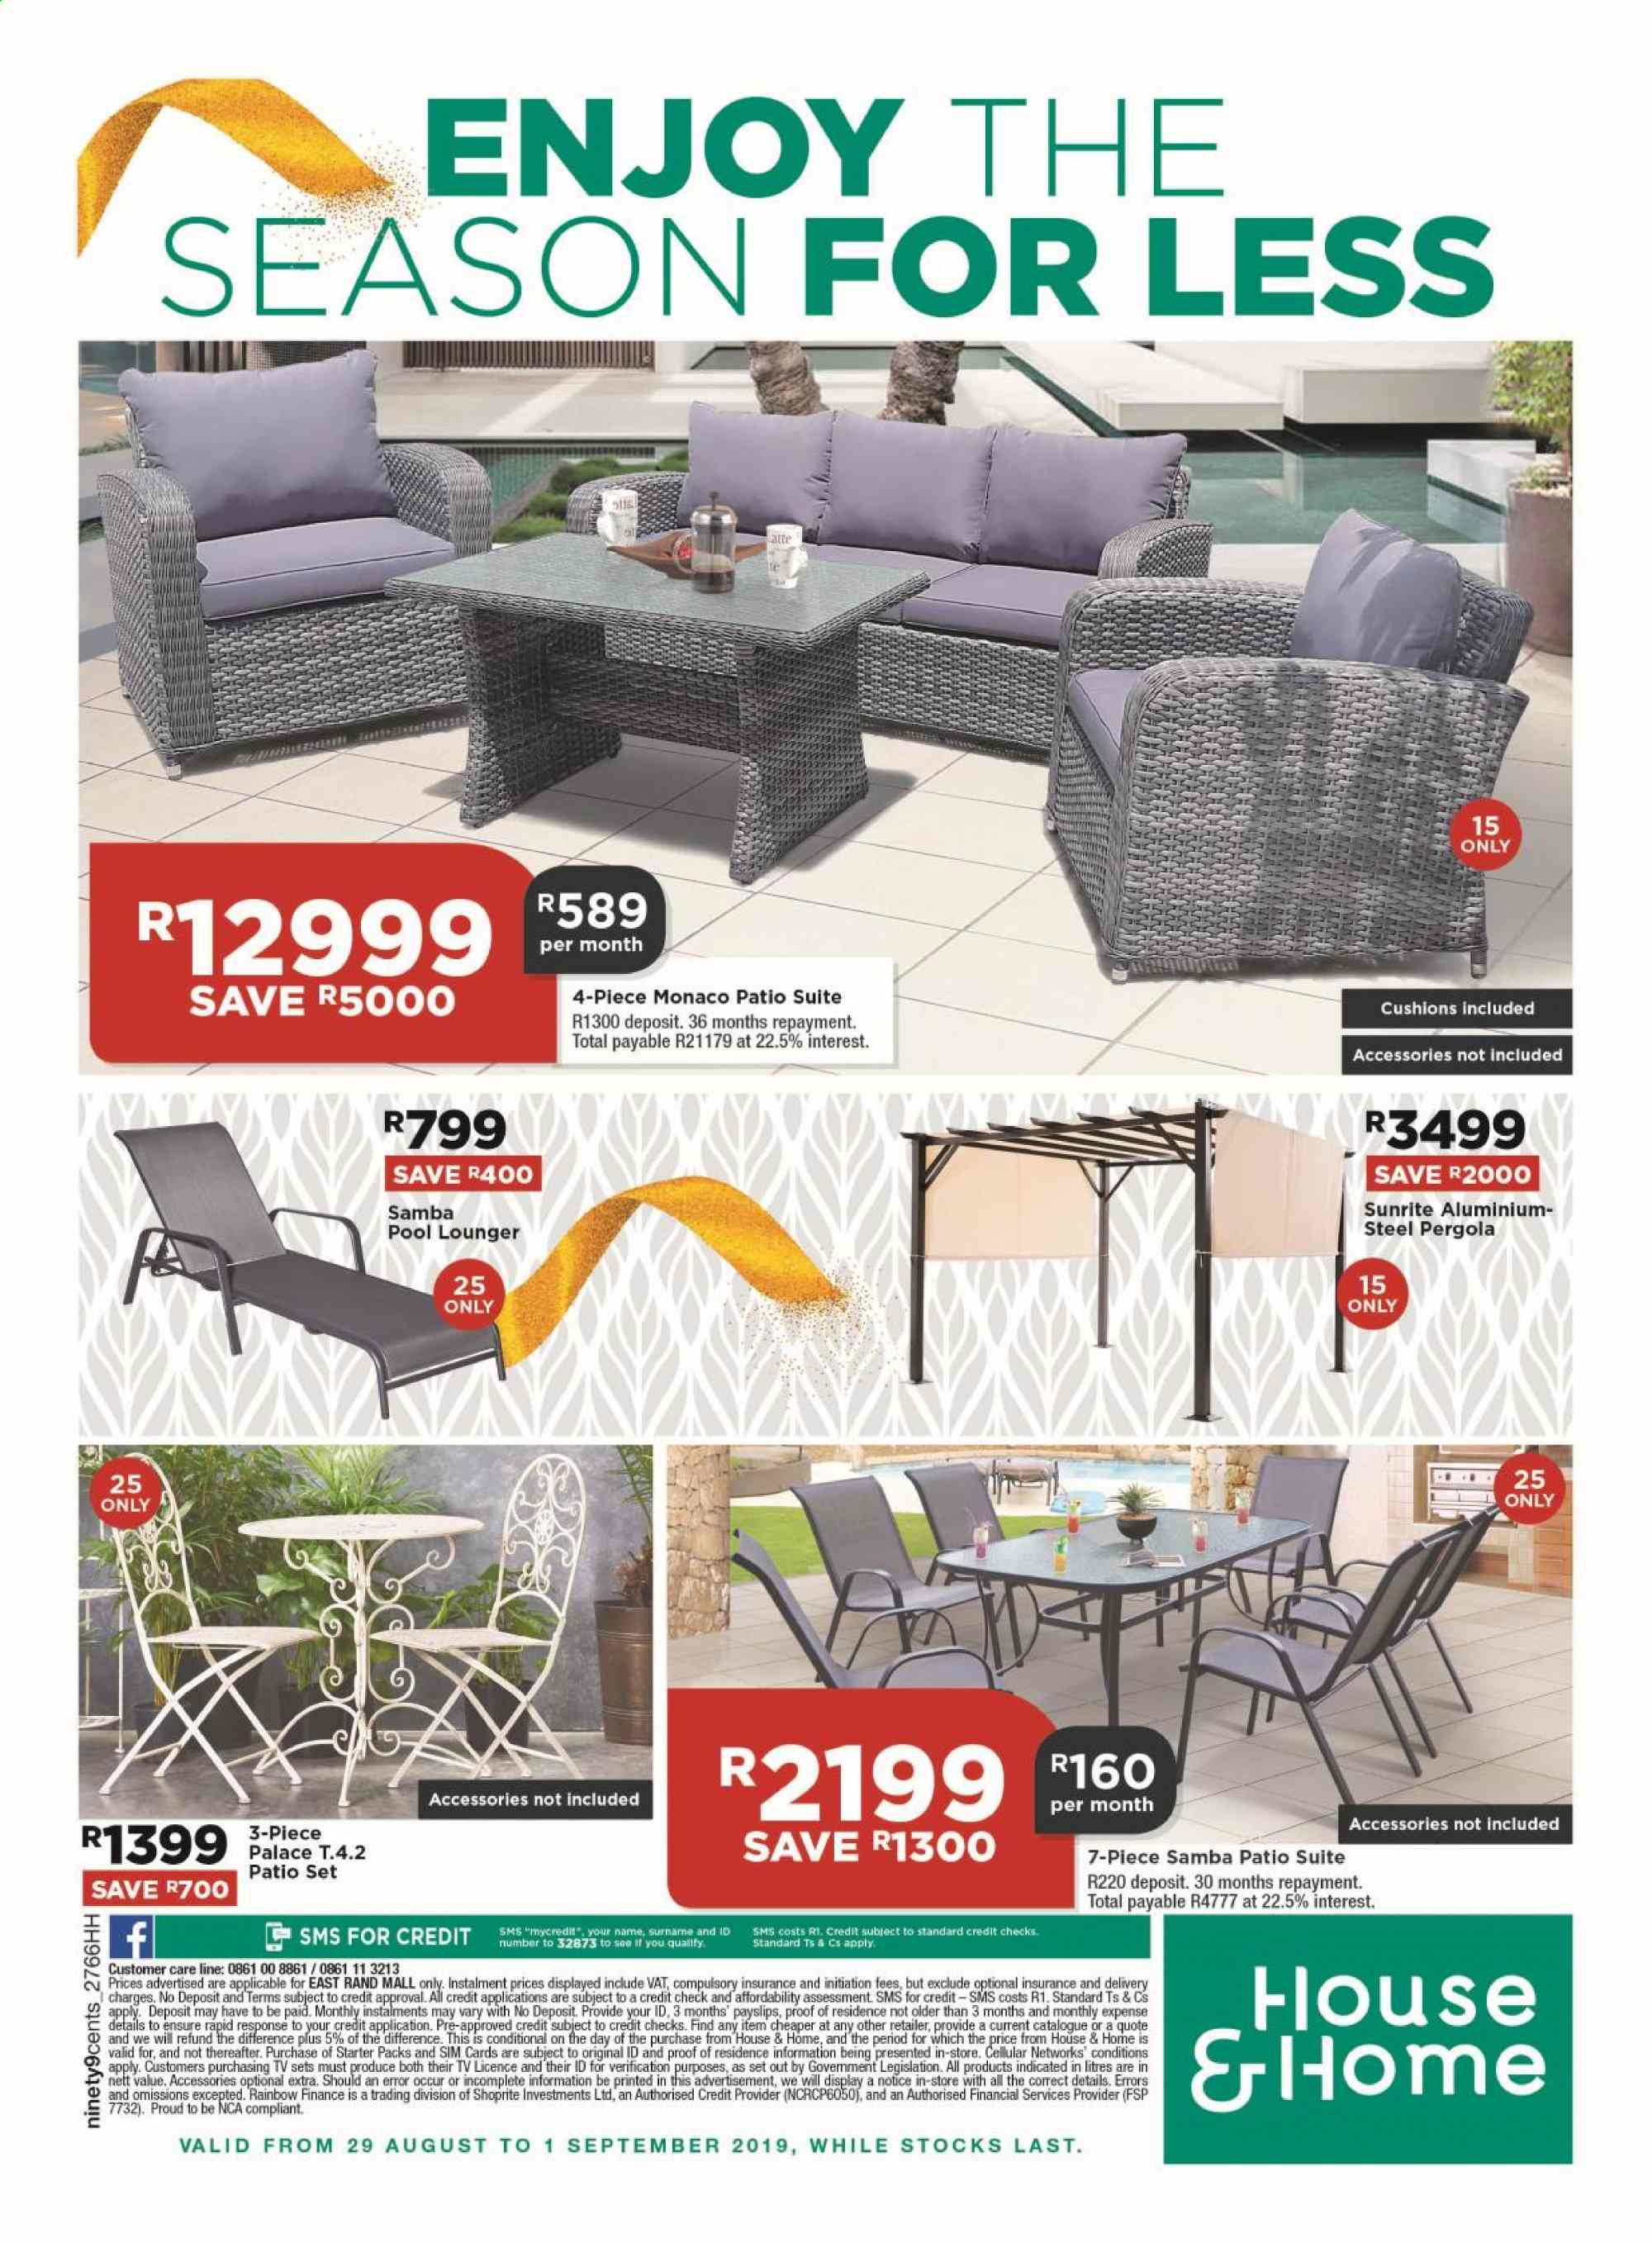 House & Home catalogue  - 08.29.2019 - 09.01.2019. Page 12.